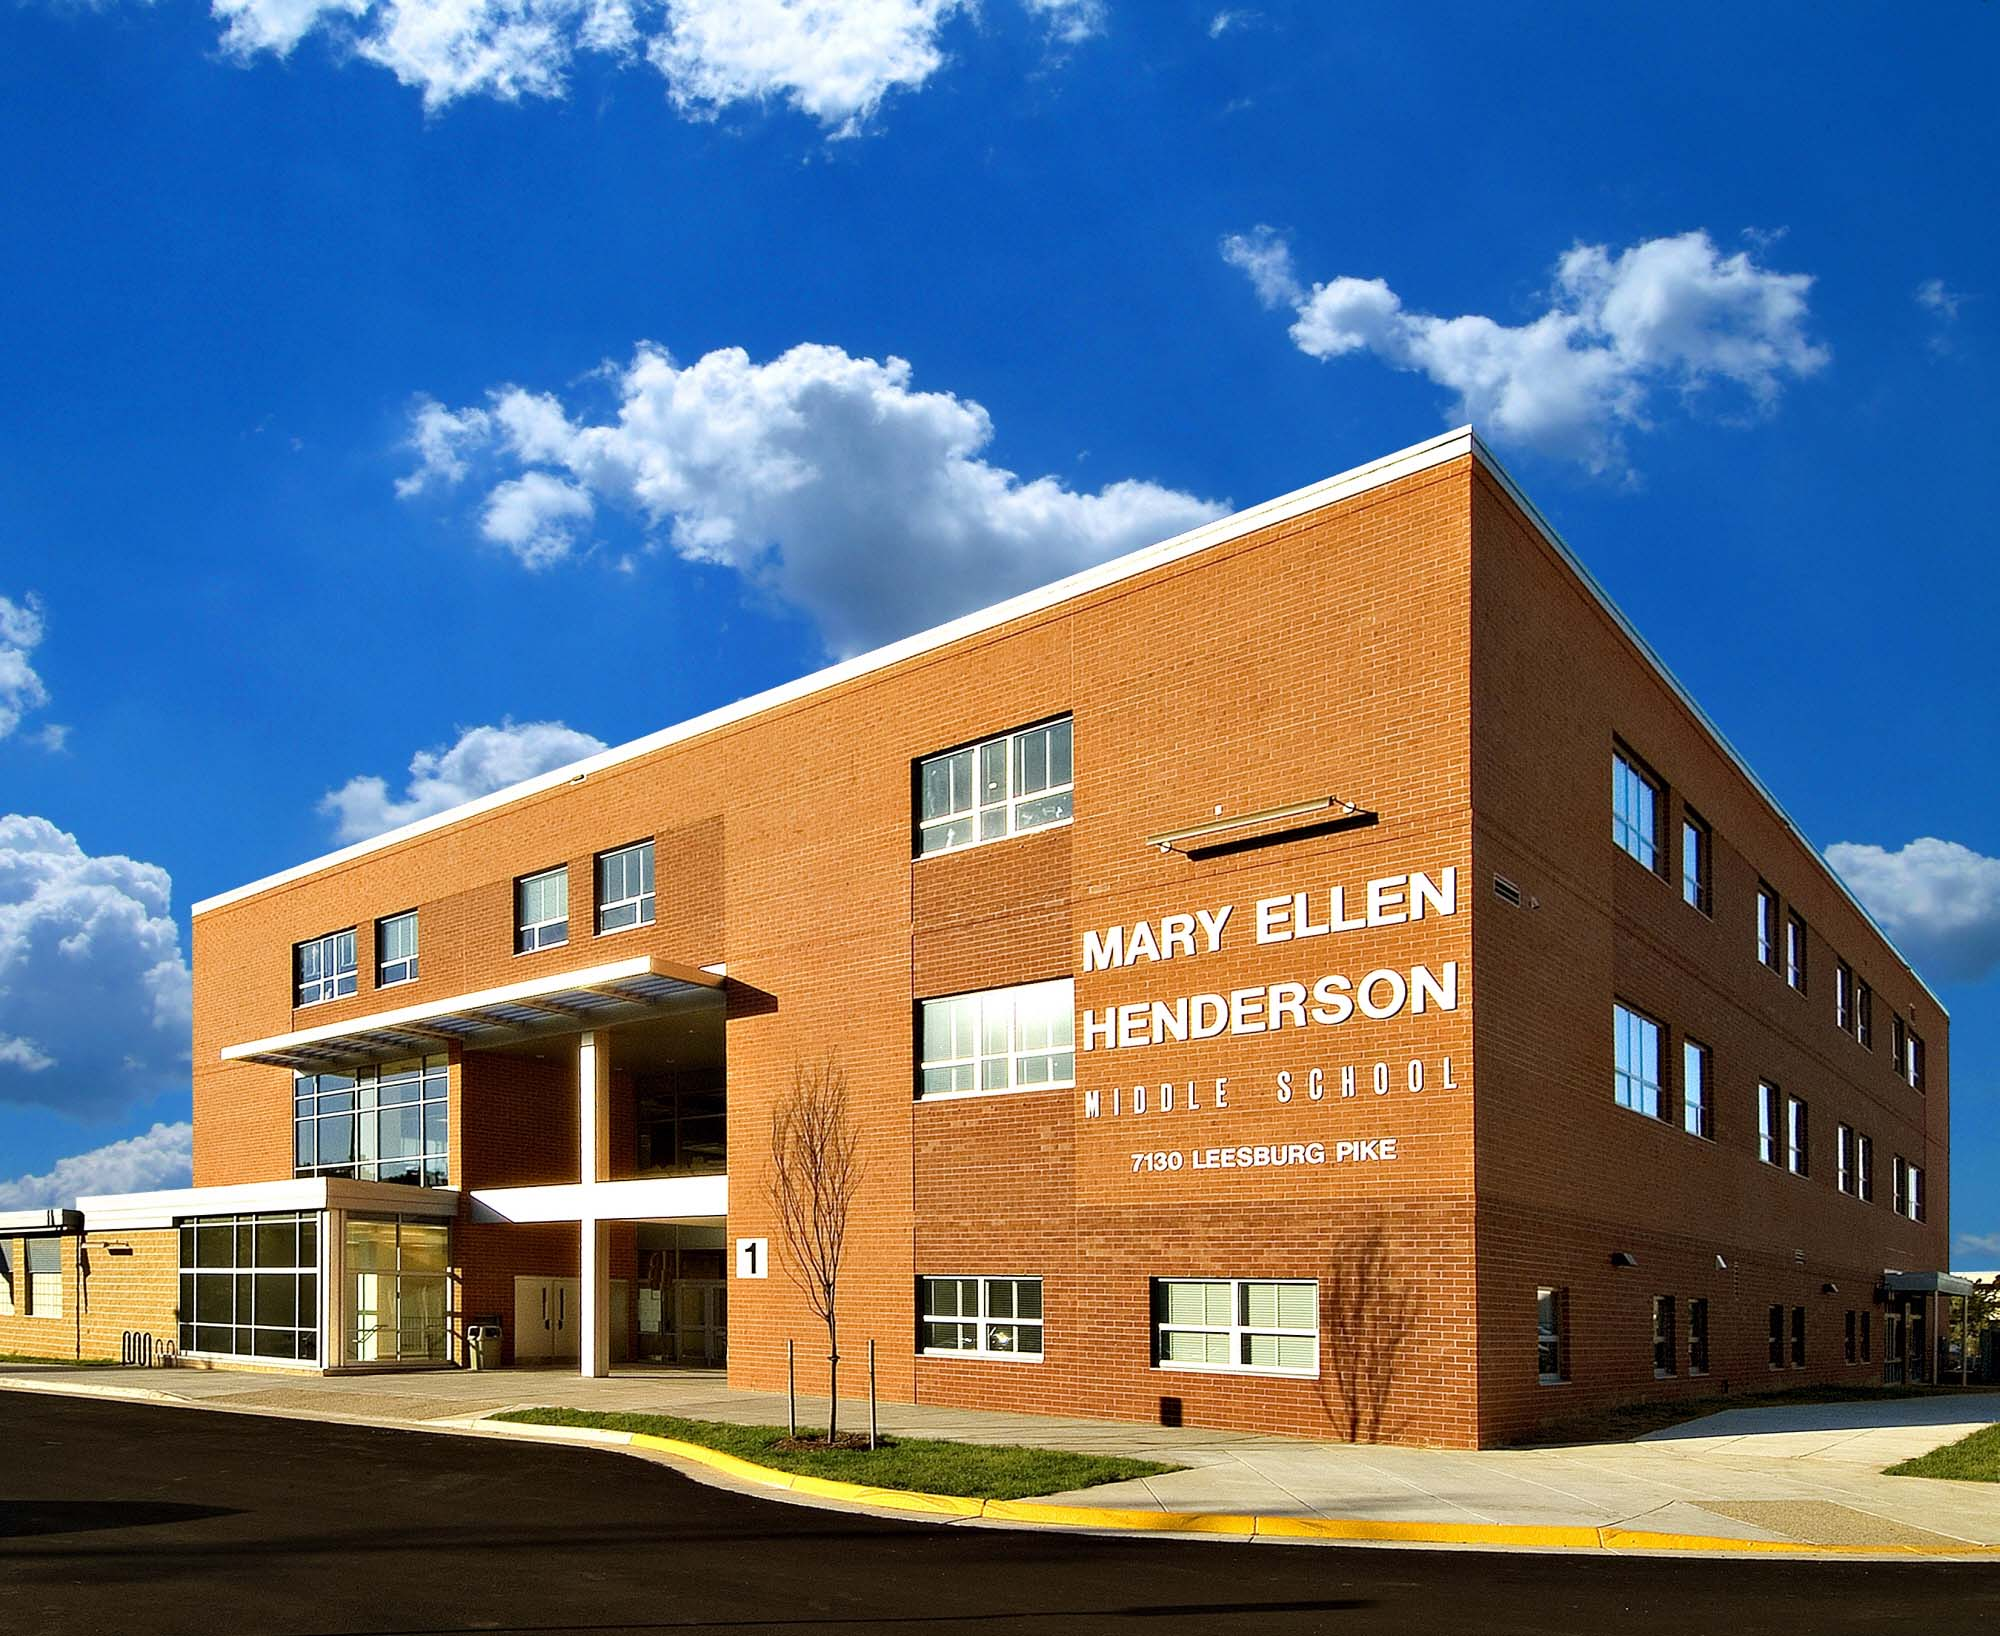 Mary Ellen Henderson Middle School